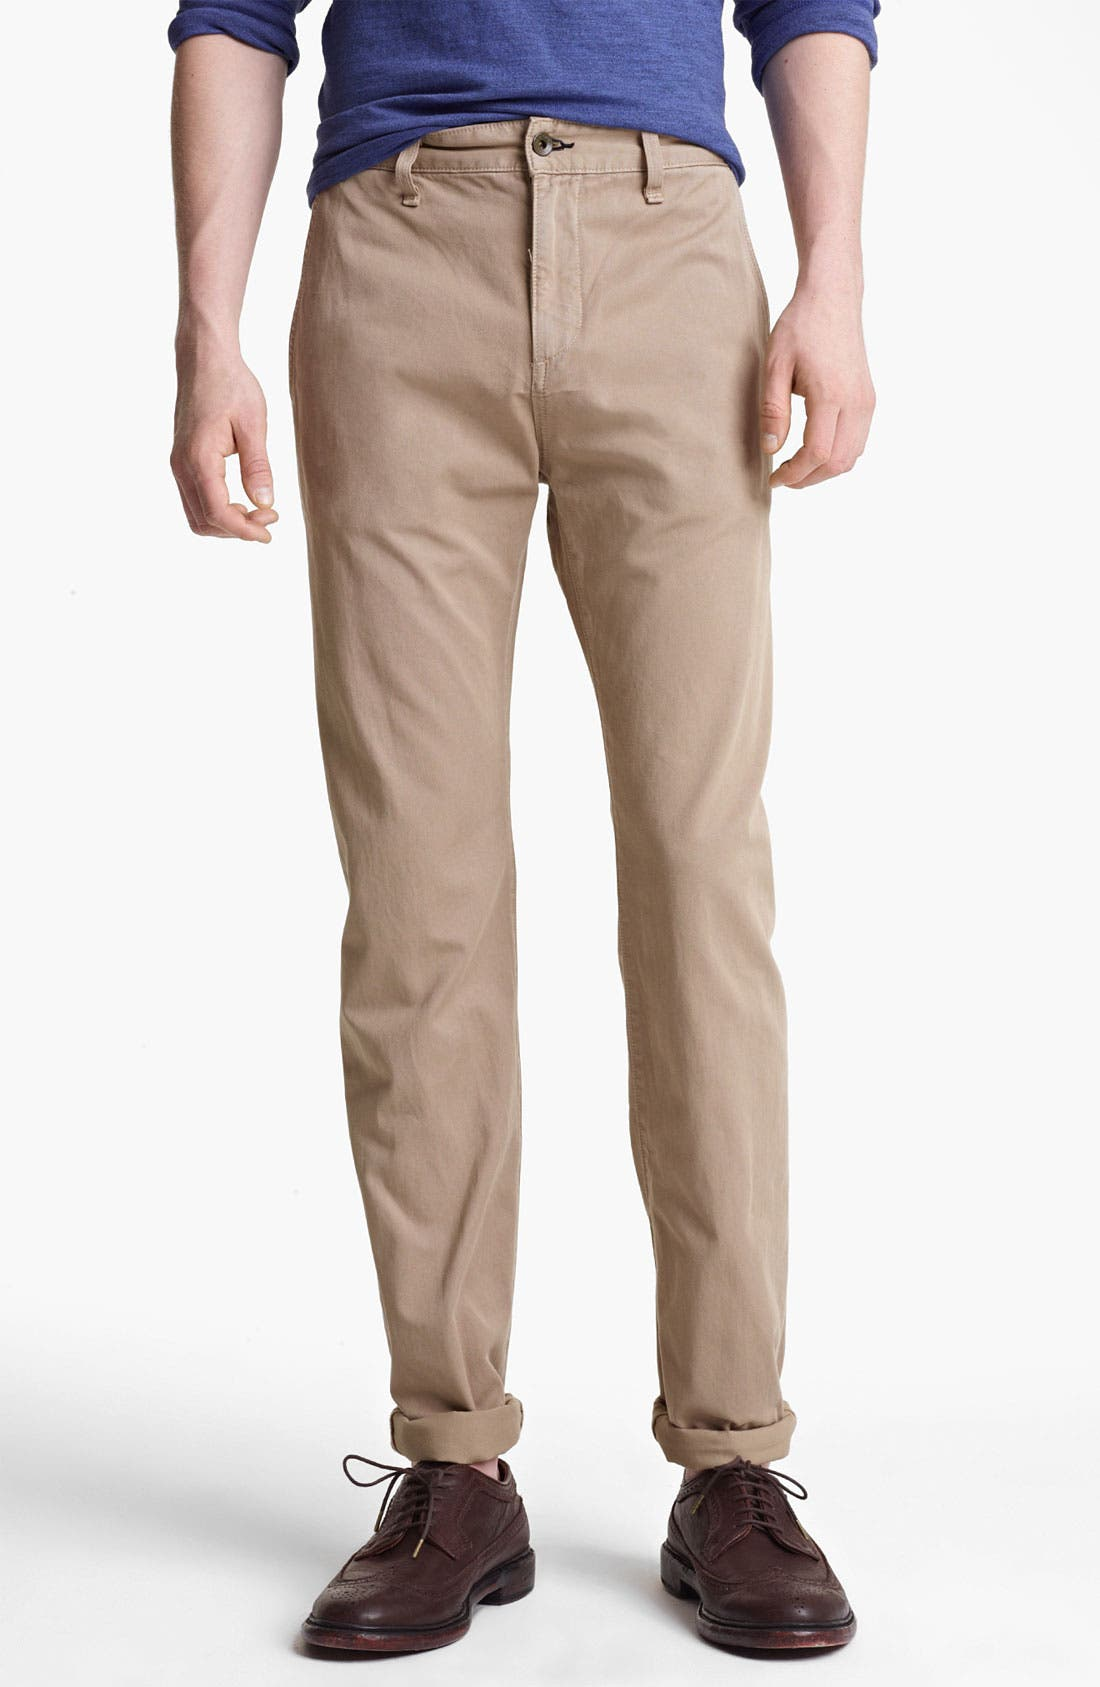 Alternate Image 1 Selected - rag & bone 'RB7' Slim Fit Cotton Pants